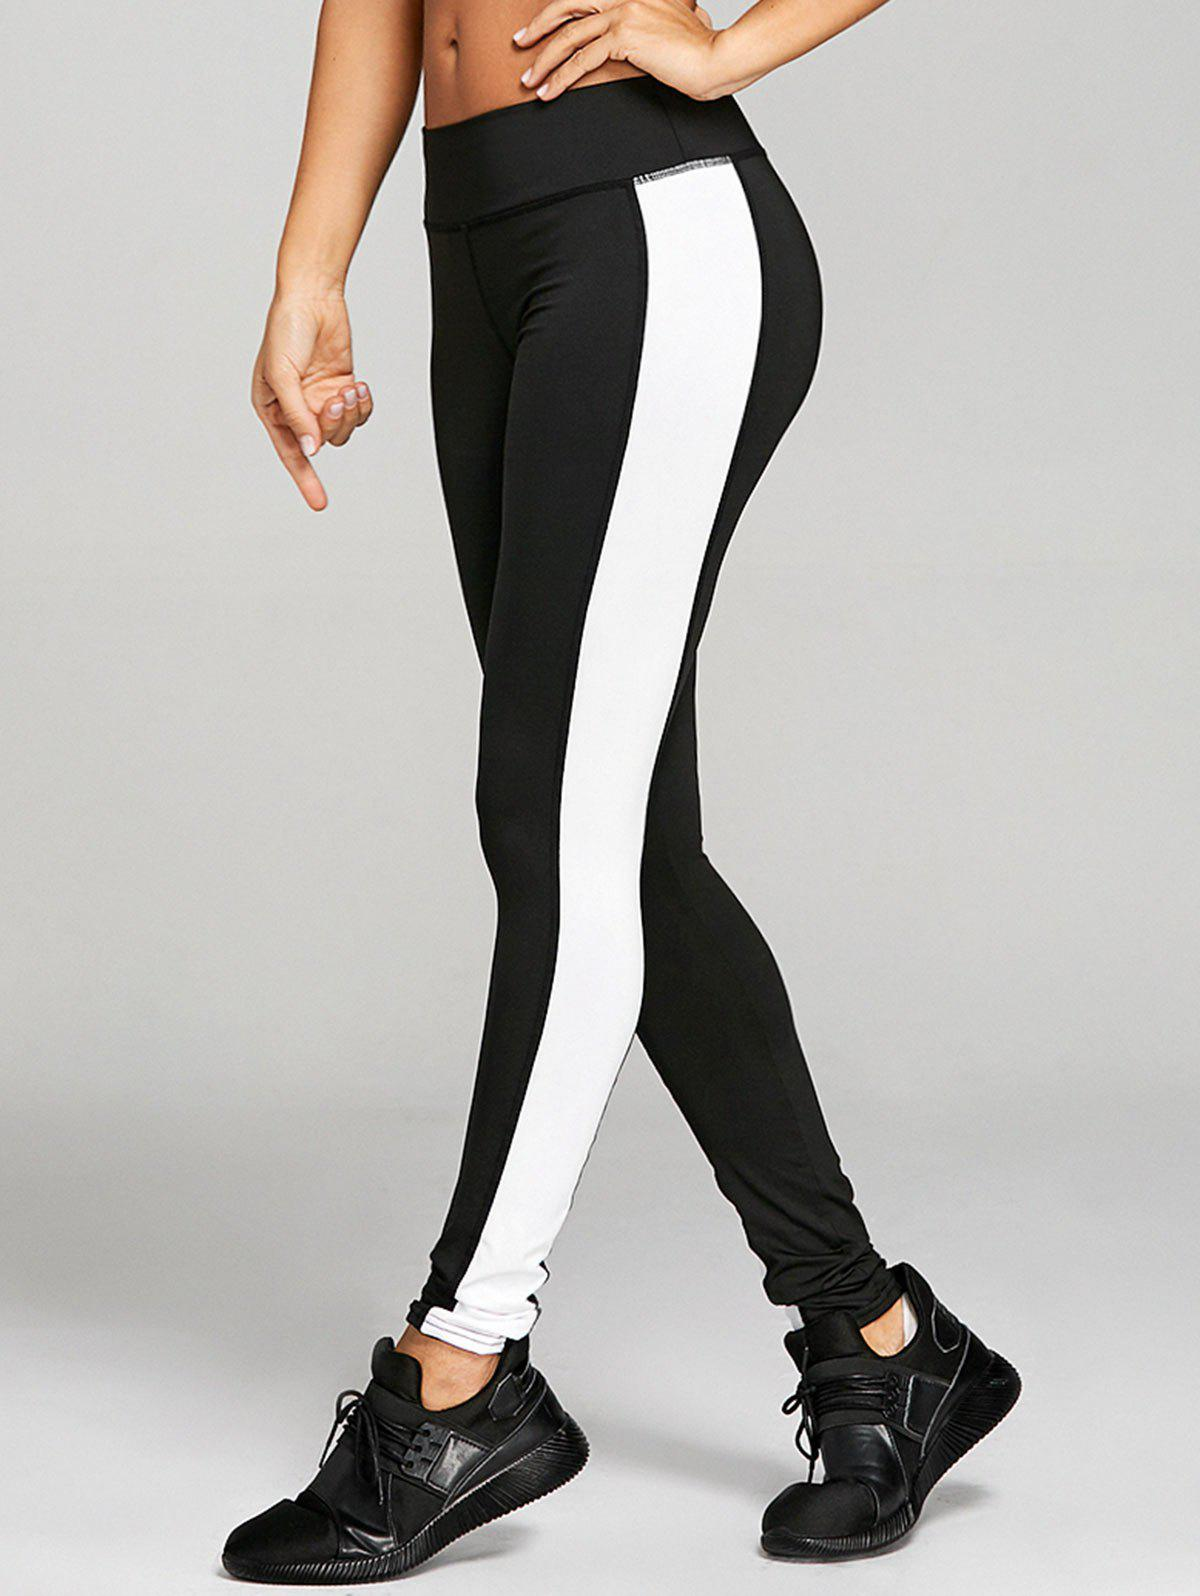 Store Stretchy Two Tone Workout Leggings